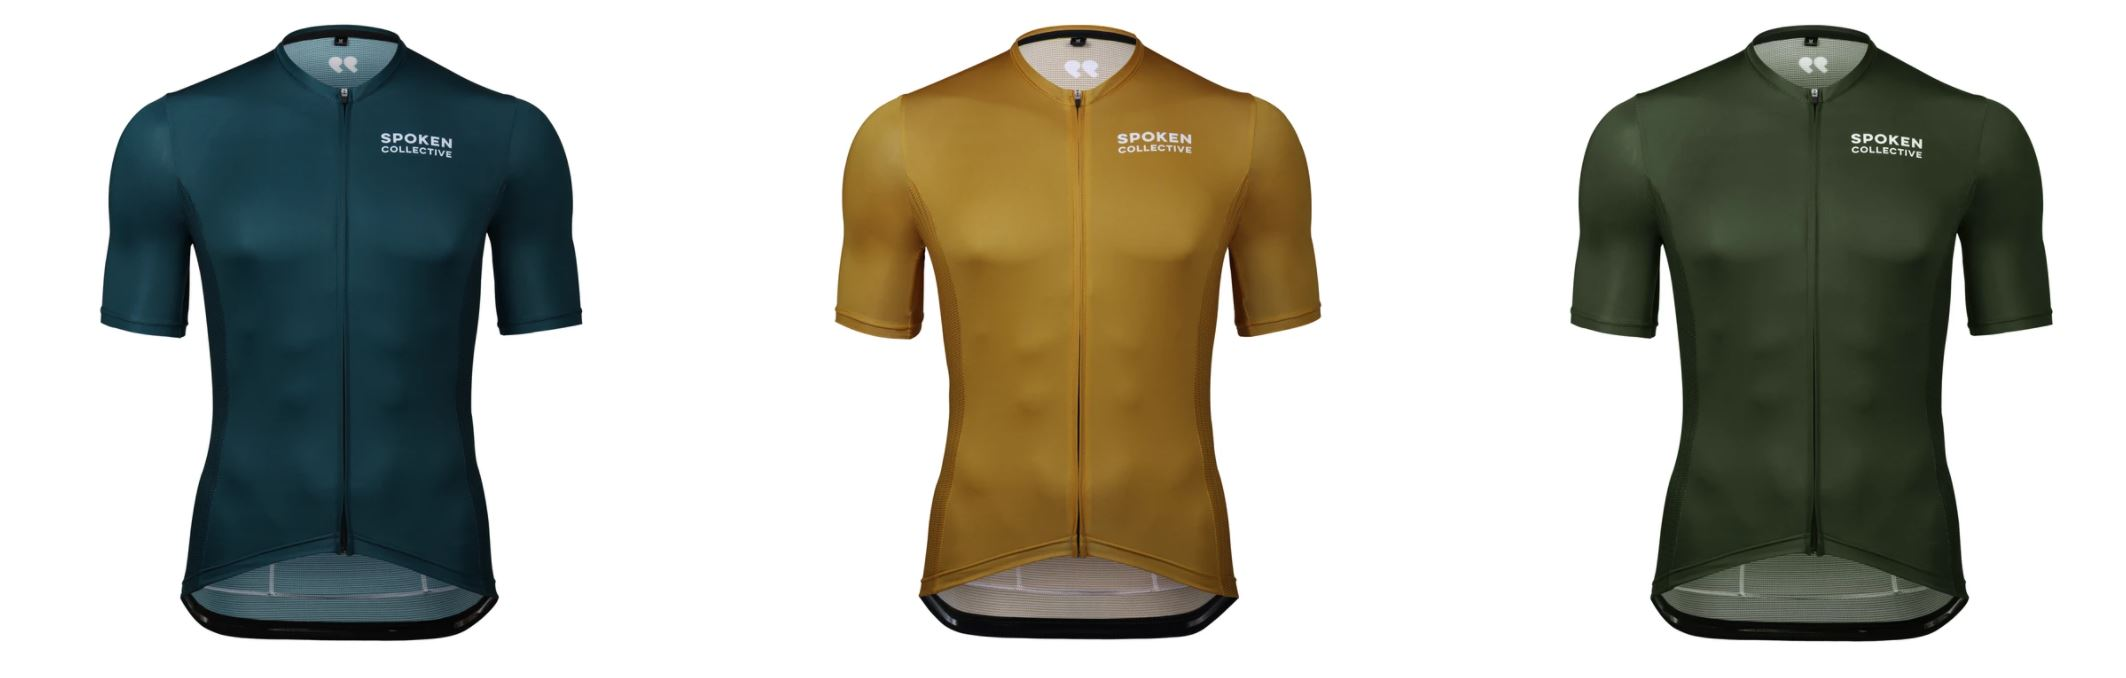 Sustainable cycling jerseys